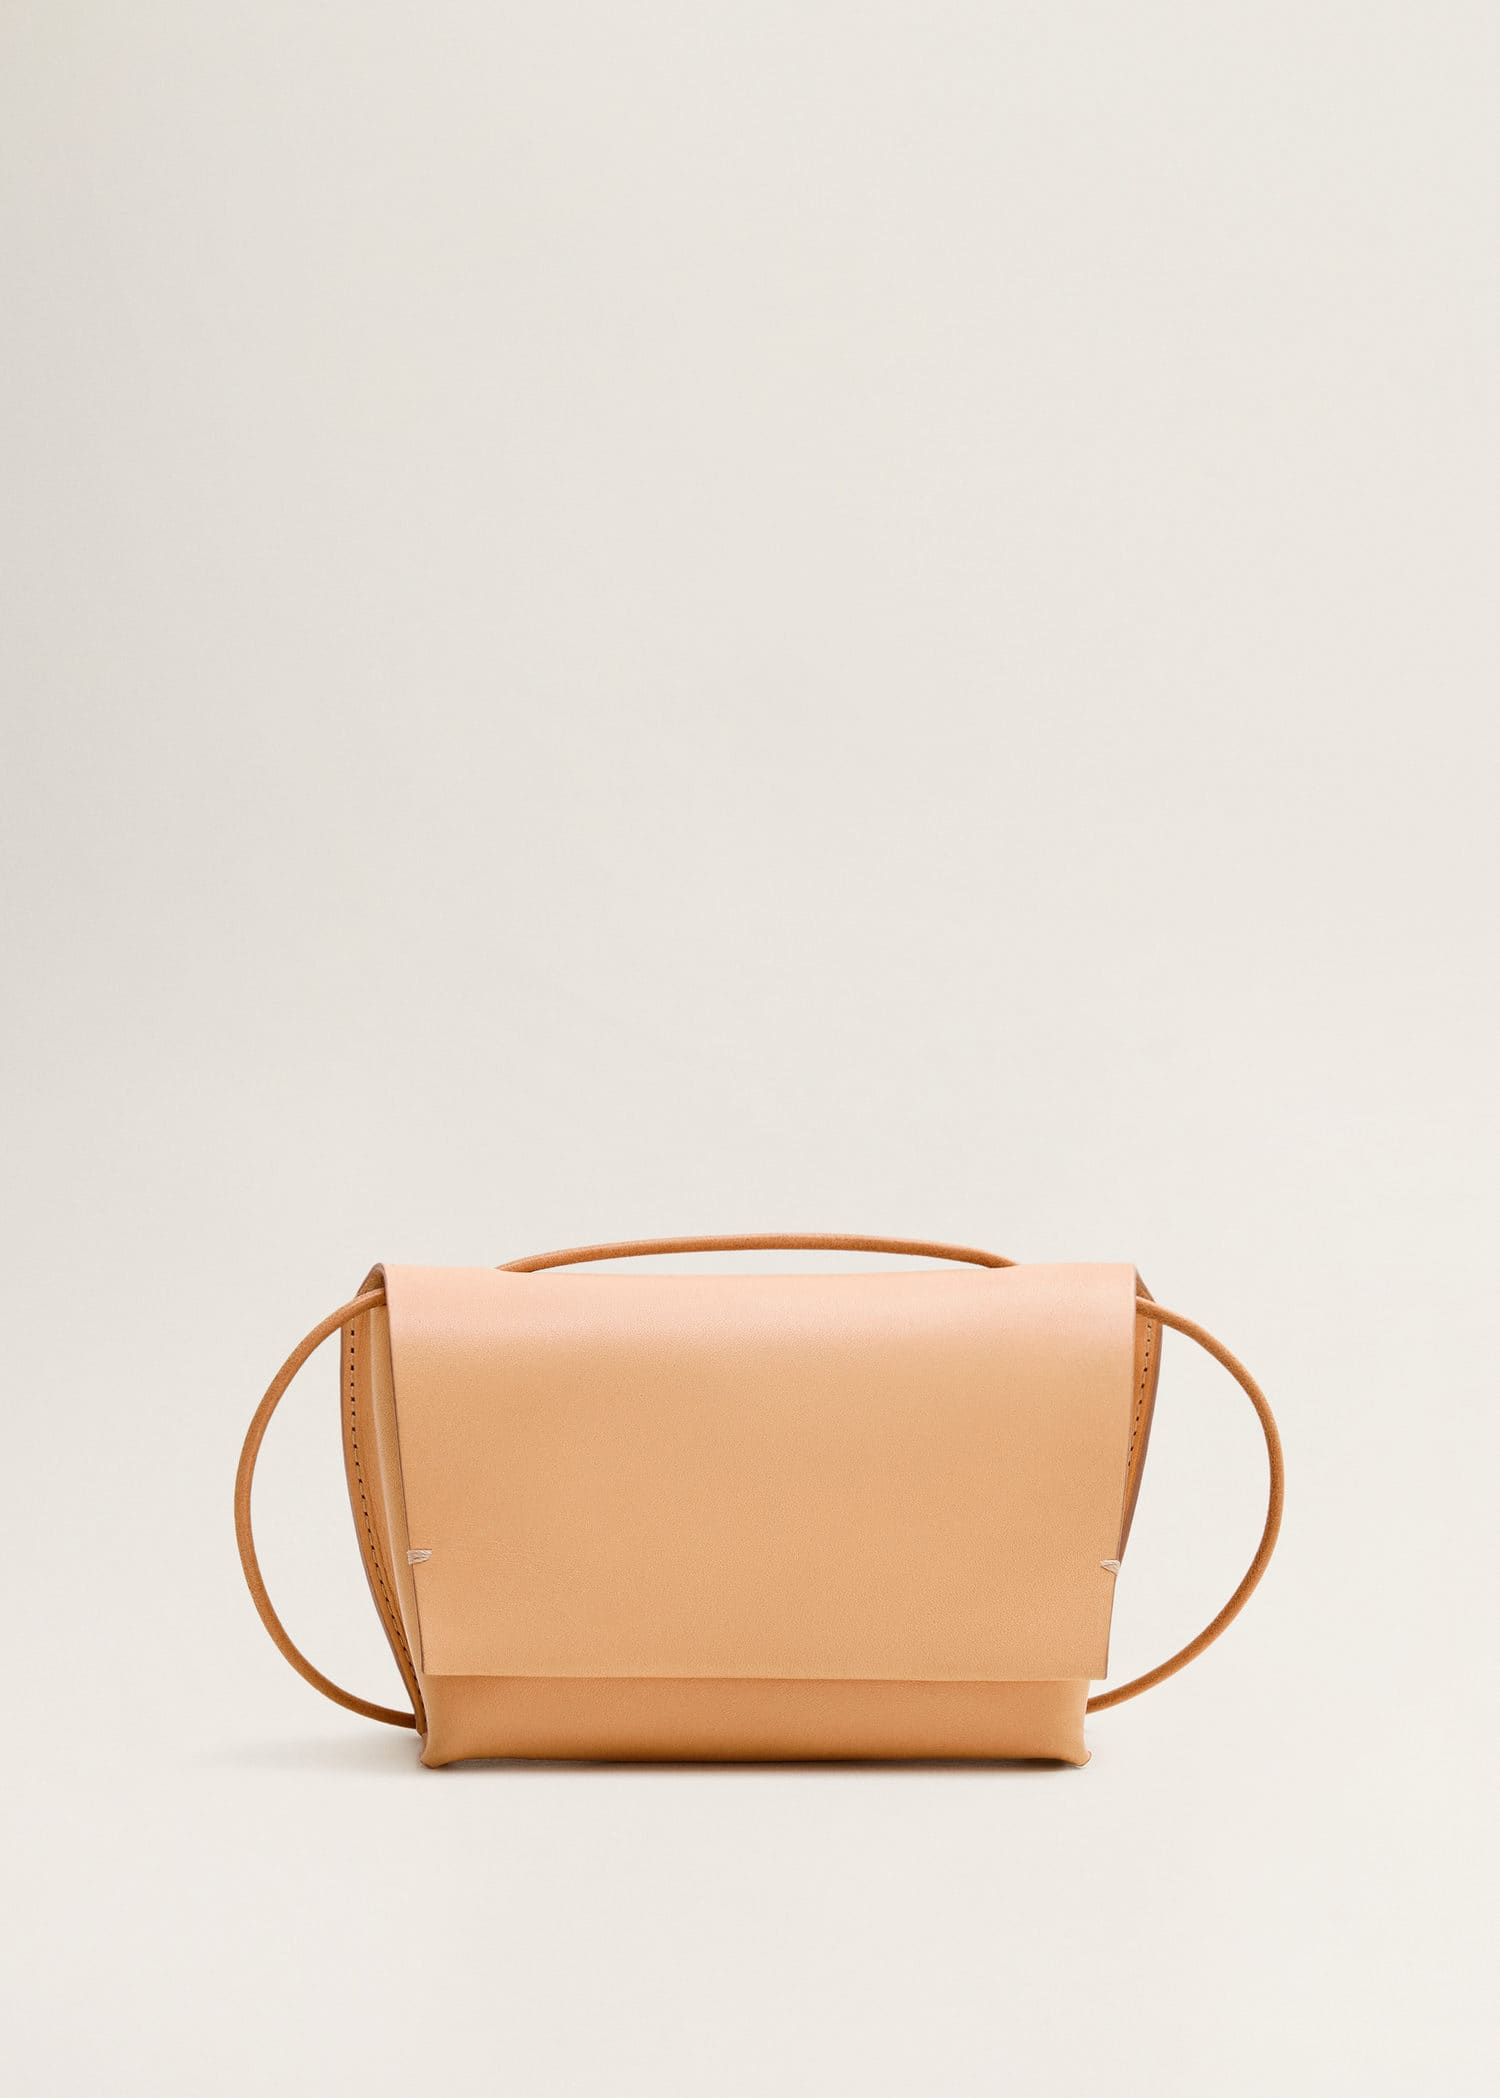 b86be0e90eed Leather mini bag - Article without model